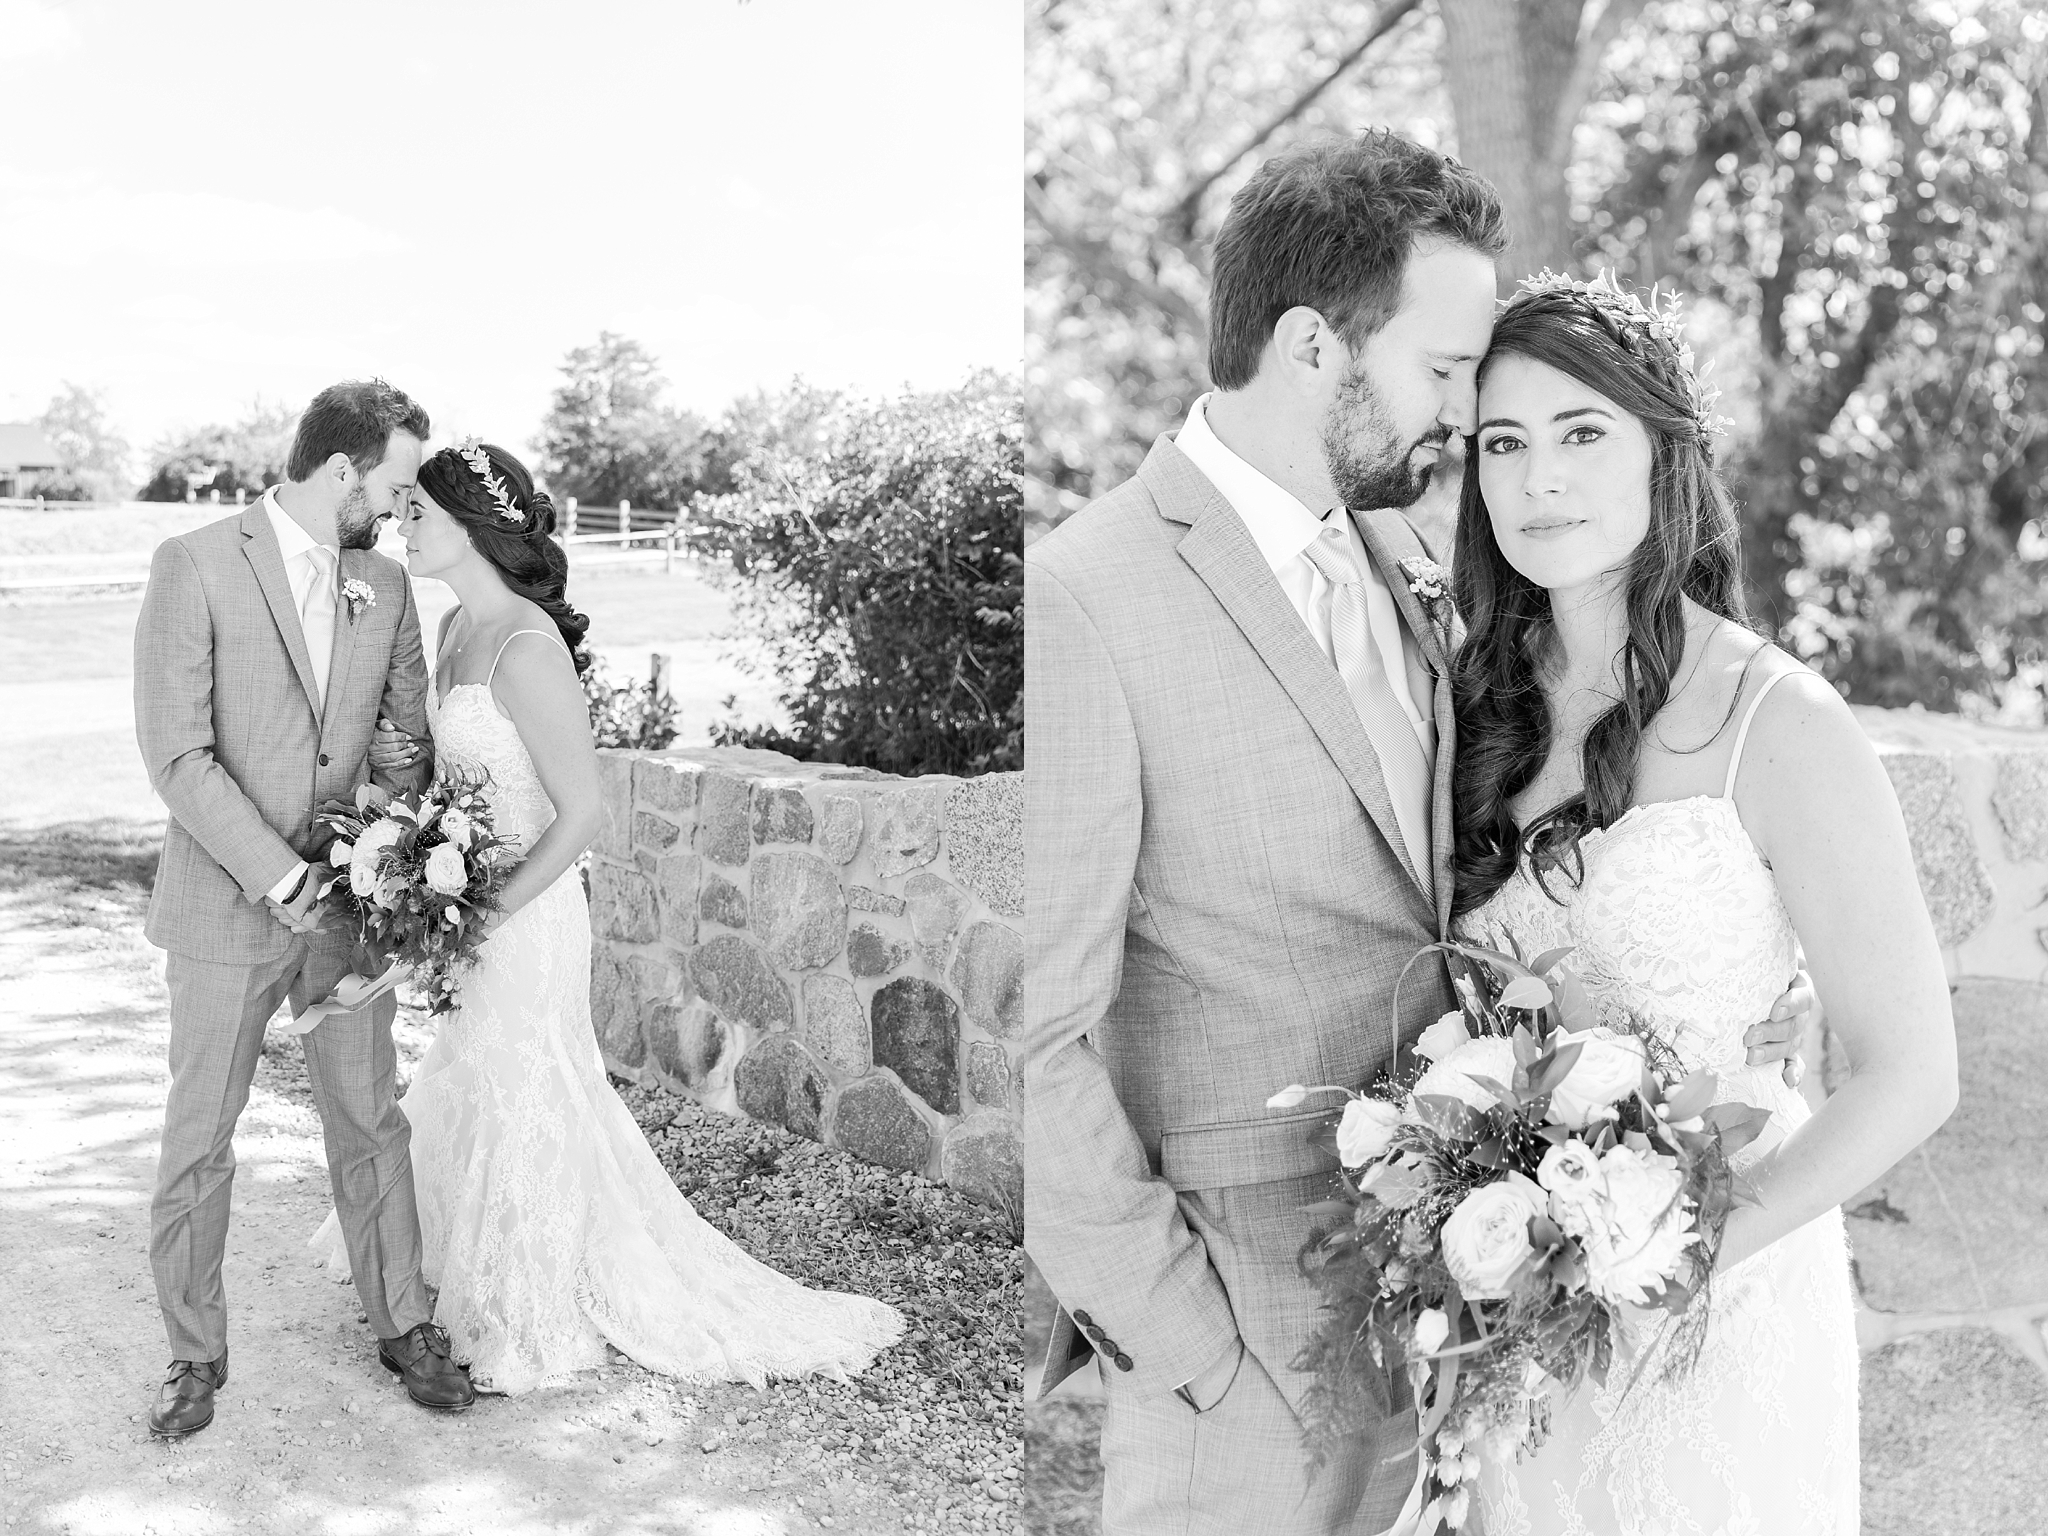 natural-rustic-wedding-photos-at-frutig-farms-the-valley-in-ann-arbor-michigan-by-courtney-carolyn-photography_0037.jpg